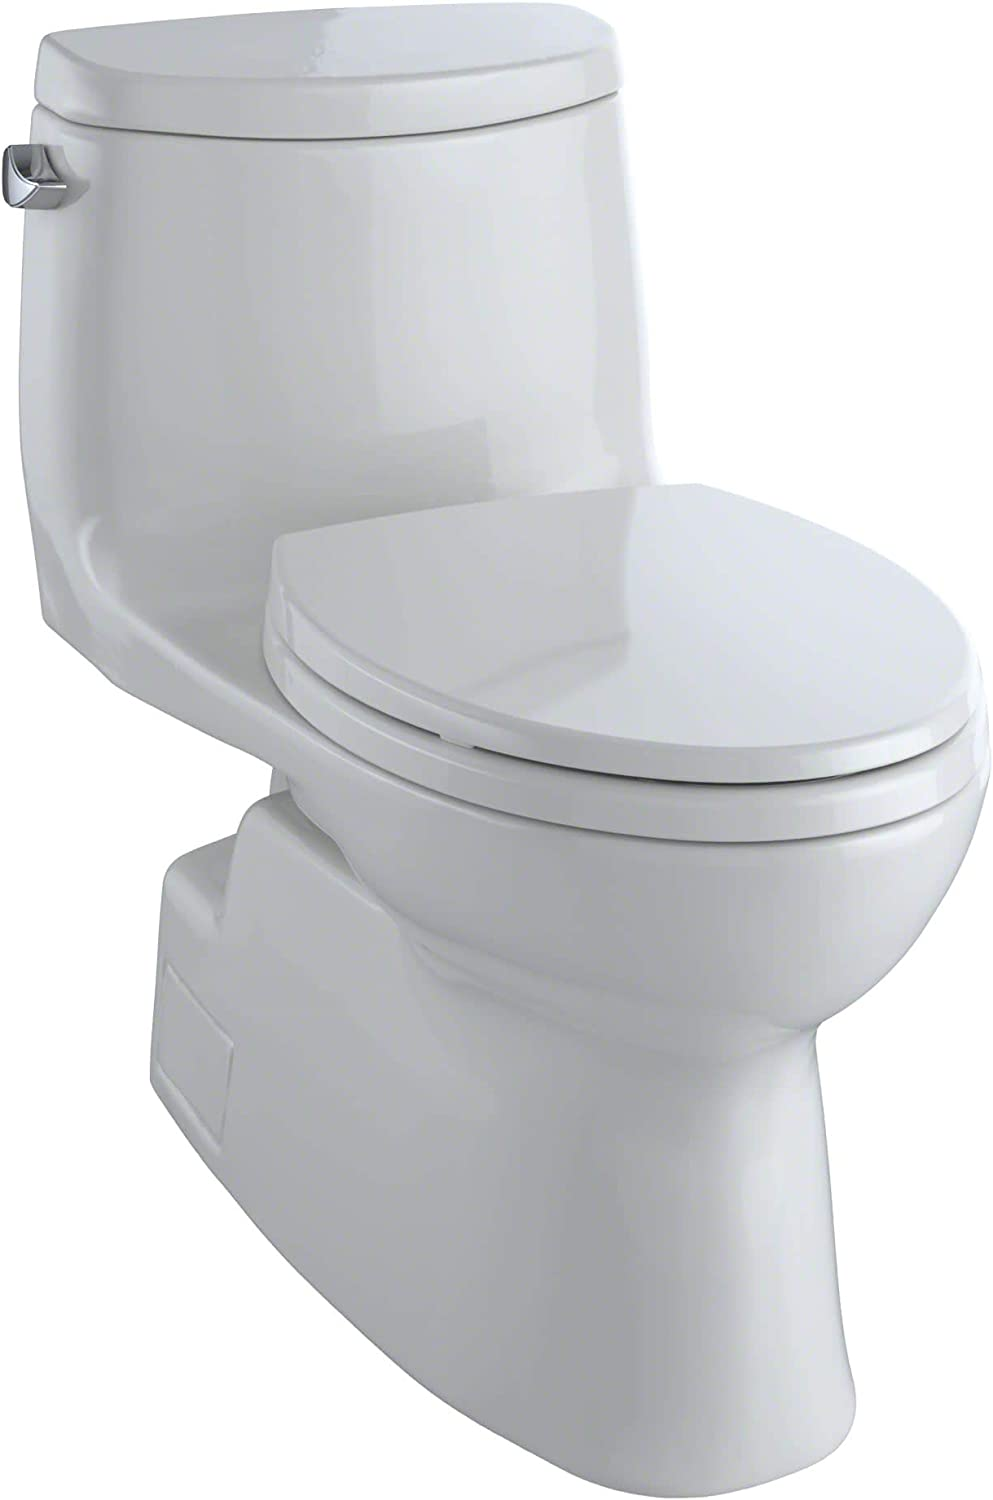 Toto Carlyle Ii One Piece Elongated 1 28 Gpf Universal Height Skirted Toilet With Cefiontect Colonial White Amazon Com